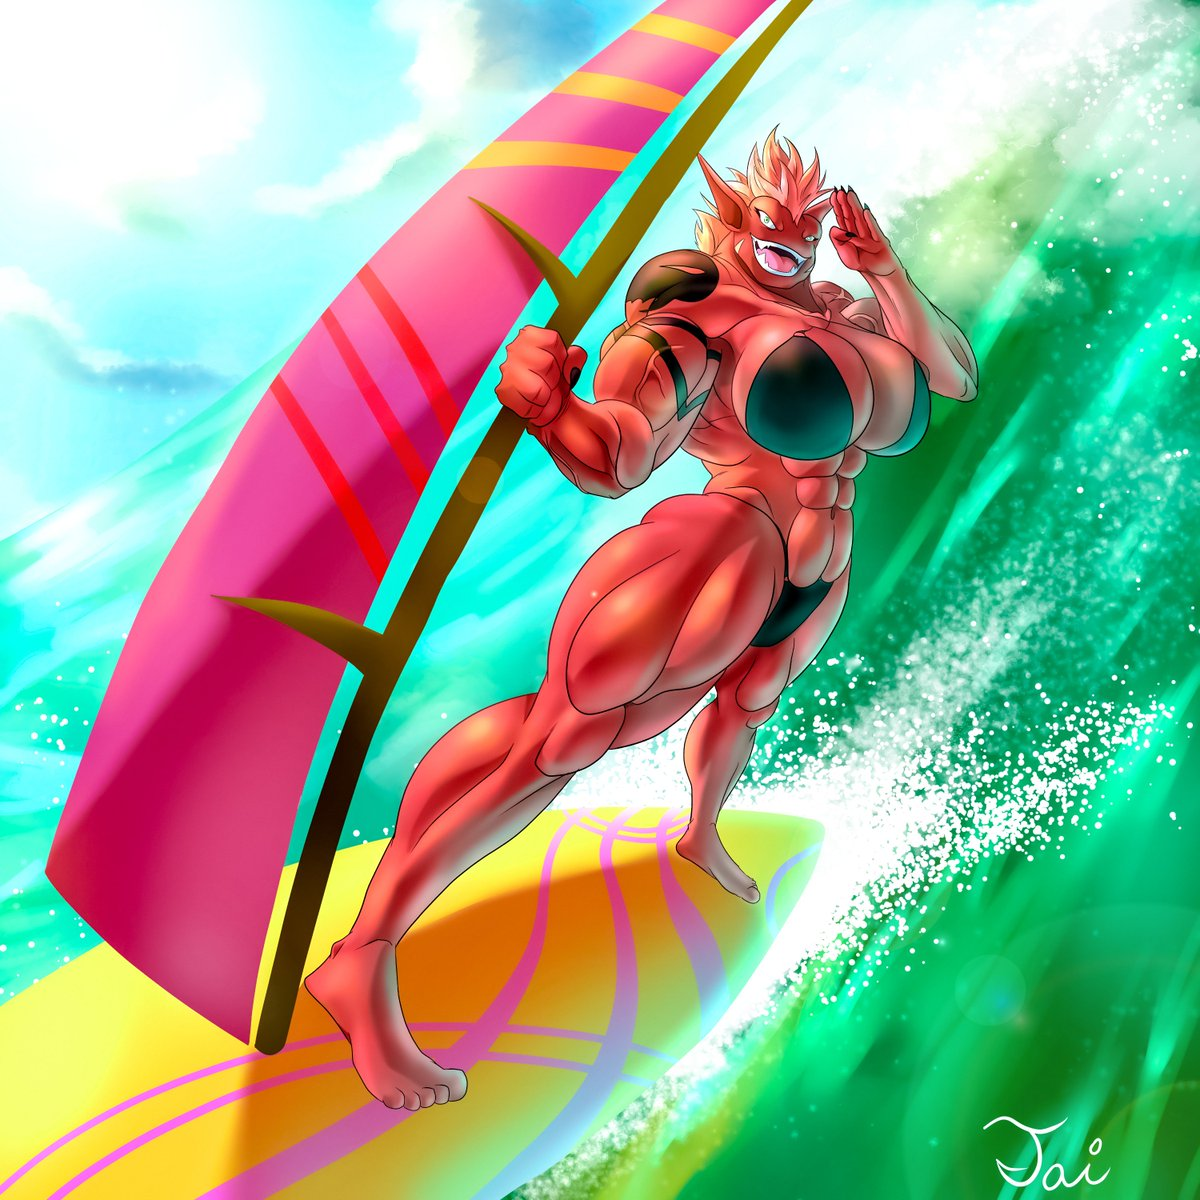 Rica surfboarding in the water. My first time illustrating surfing as well as waves. Turns out to be a bit easier than I thought. #summer